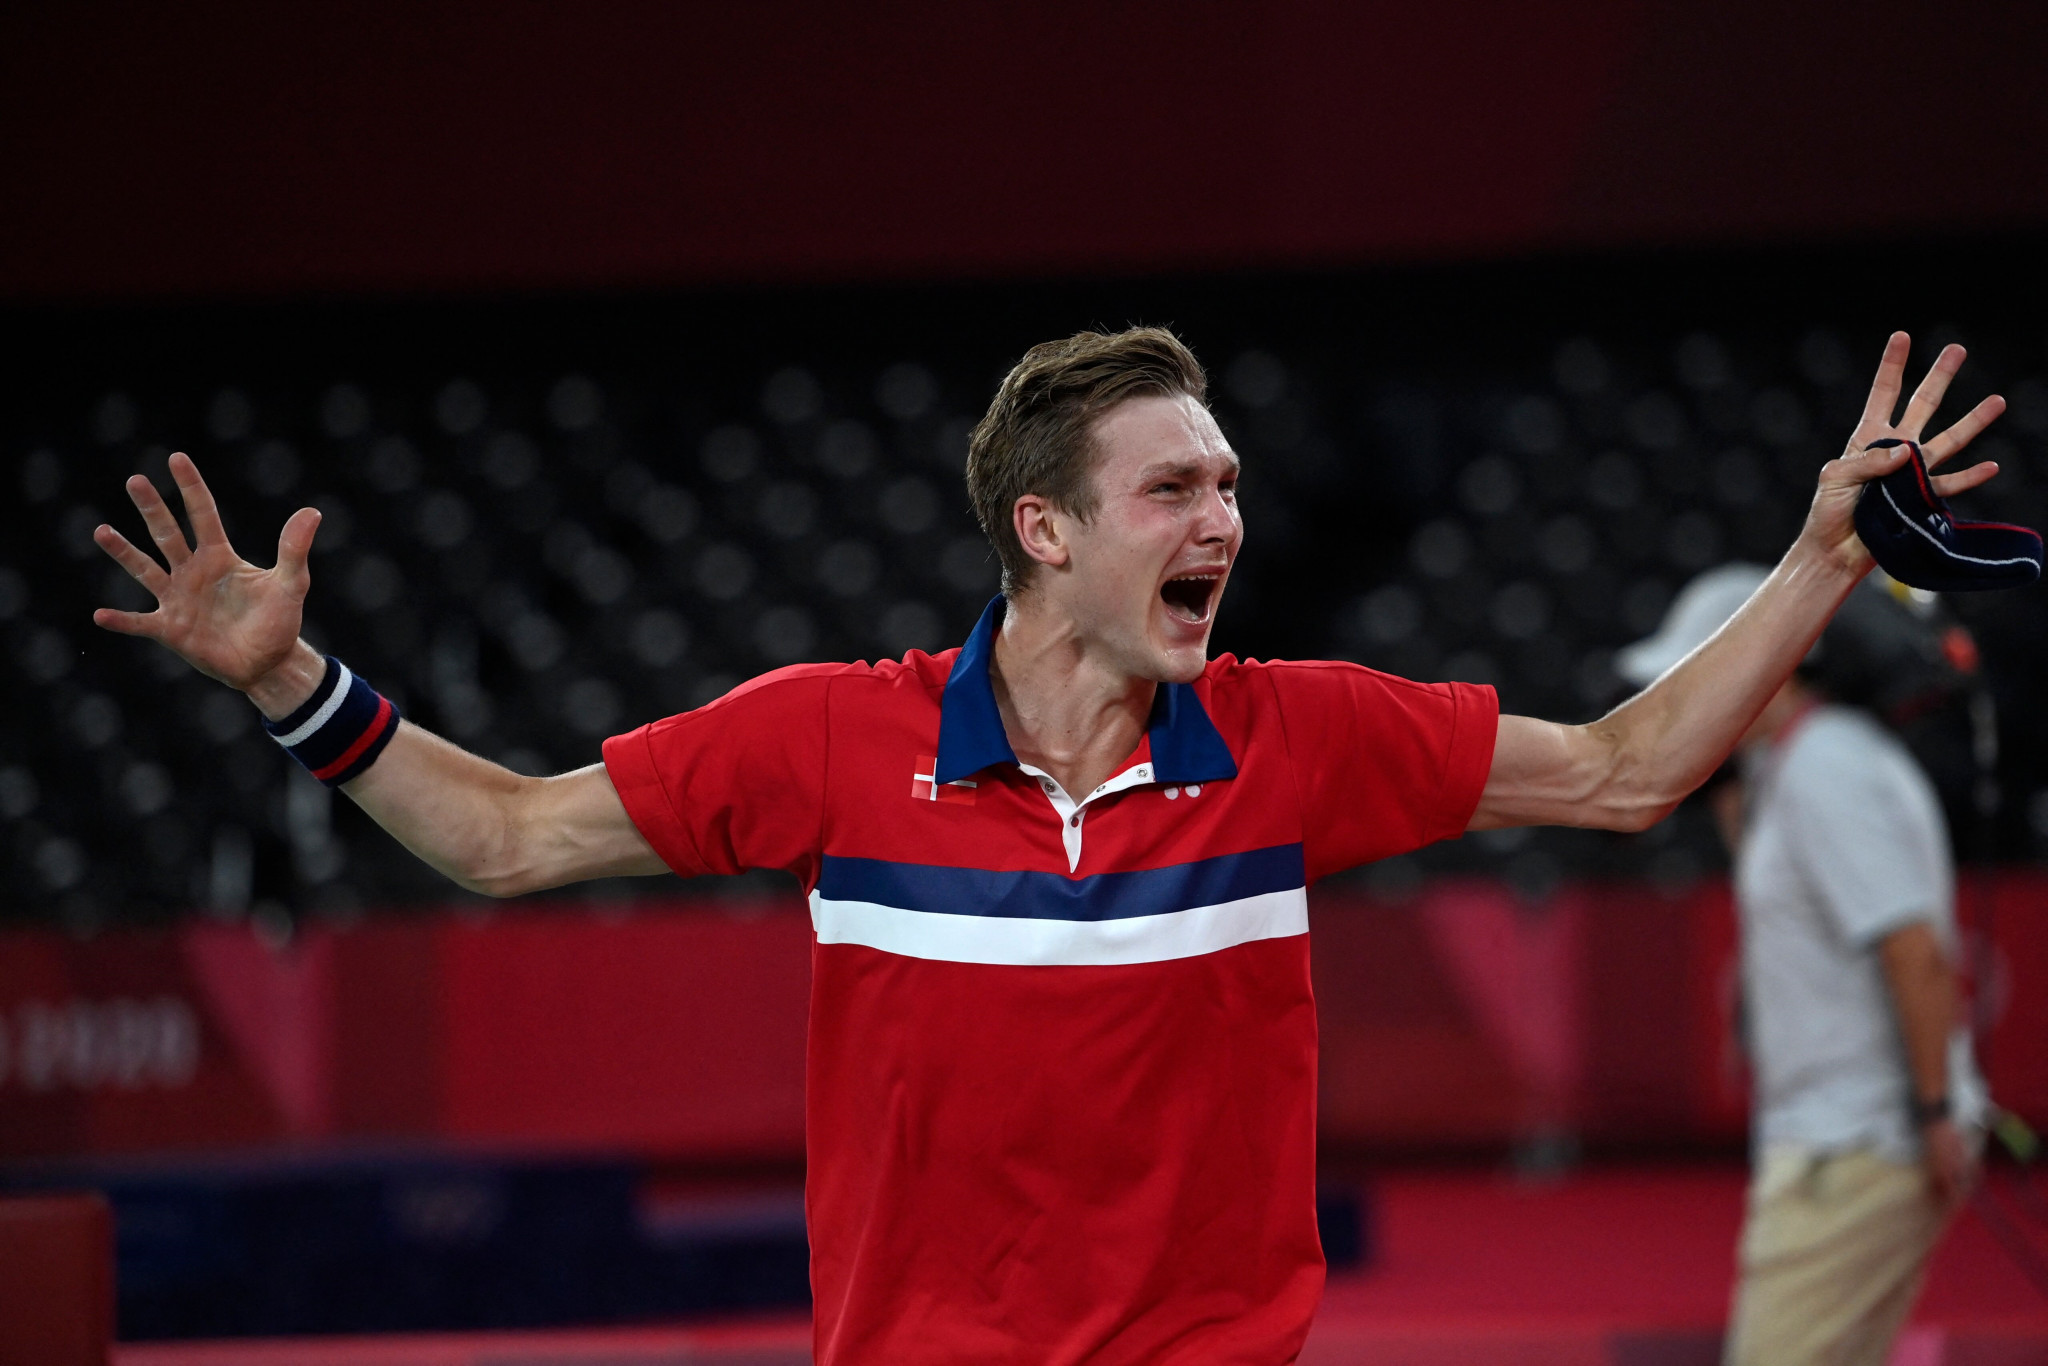 Olympic champion Axelsen bids to lead Denmark to glory at star-studded Sudirman Cup Finals